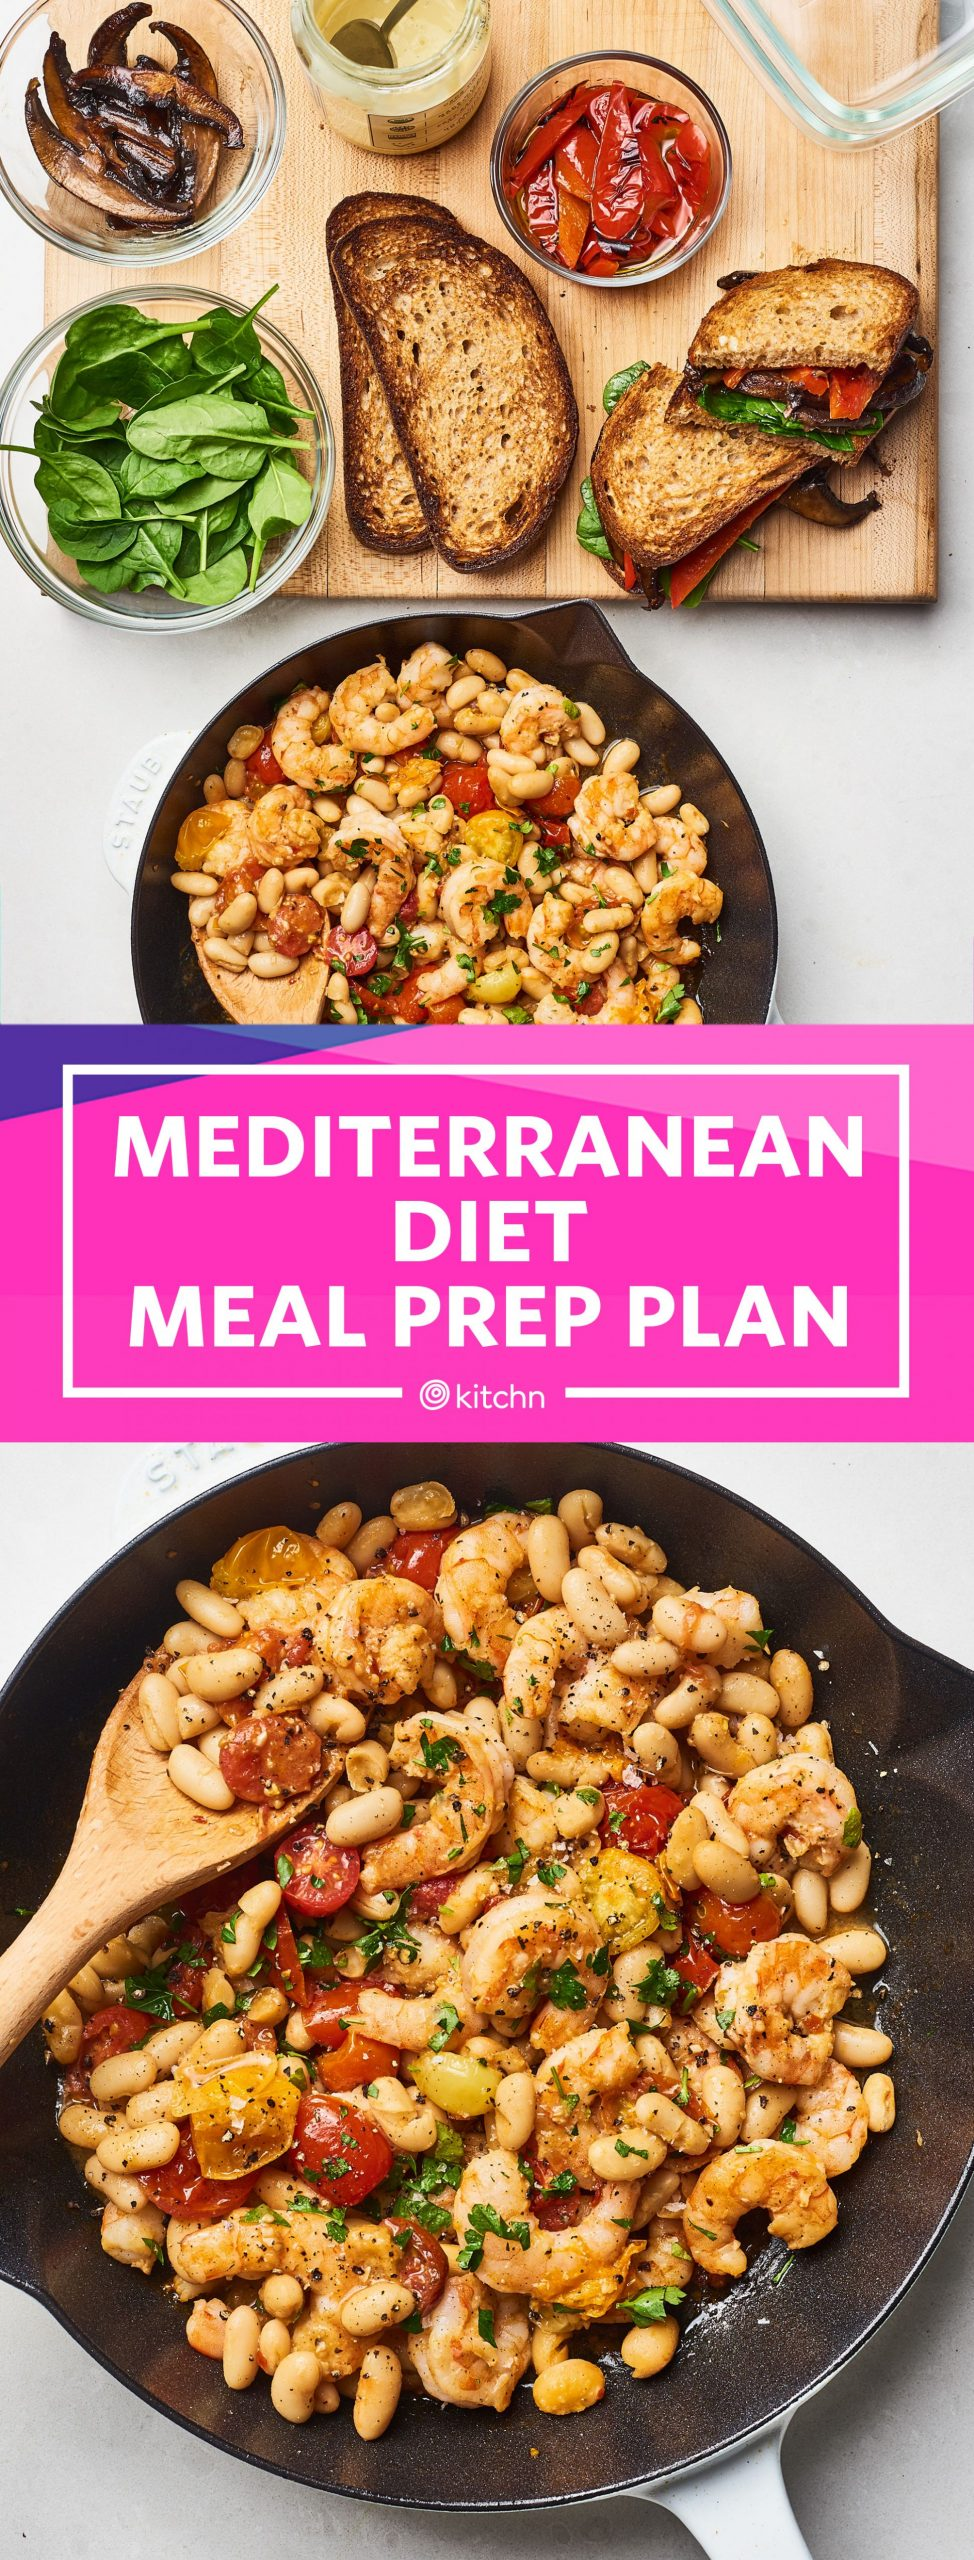 How to Prep a Week of Easy Mediterranean Diet Meals | Kitchn - Easy Recipes Mediterranean Diet